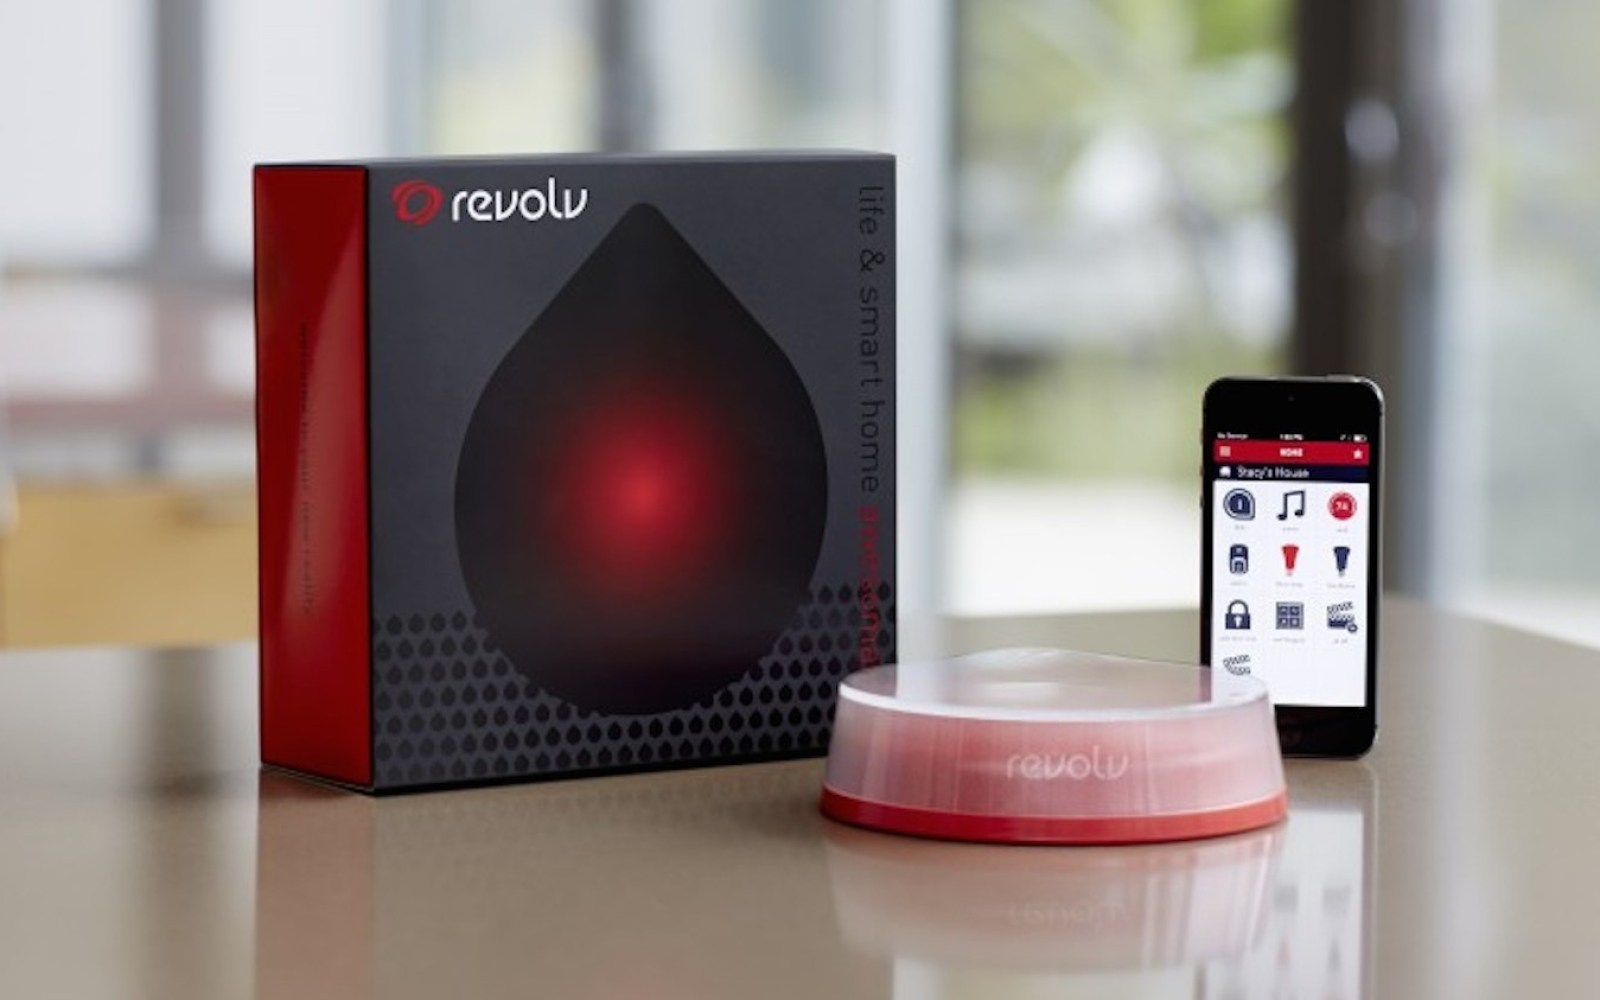 Revolv, acquired by Nest Labs in 2014, is shutting down all its services next month